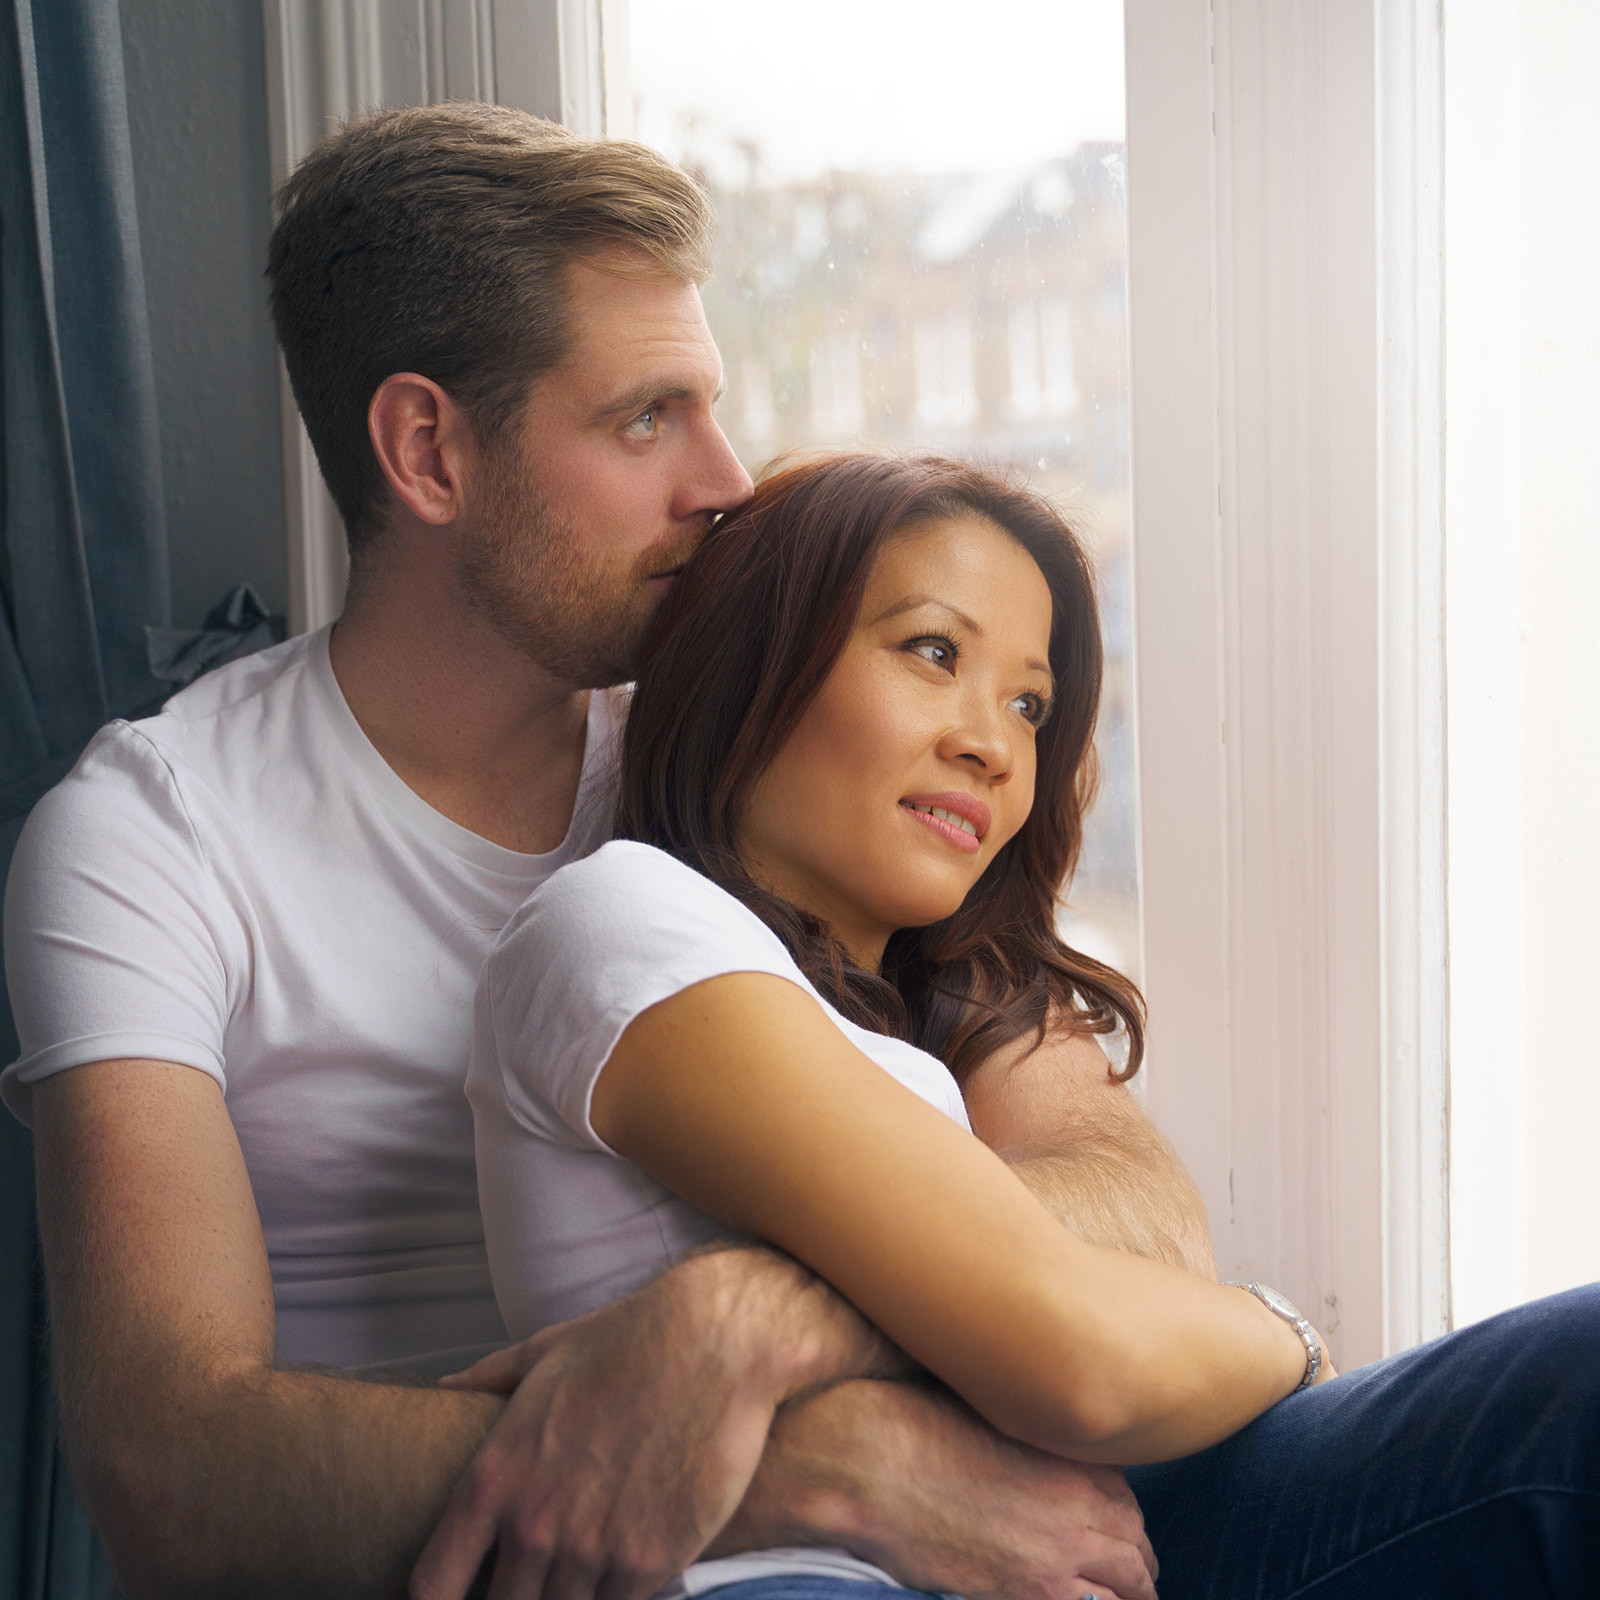 Kim and Dan Commercial Model Couple